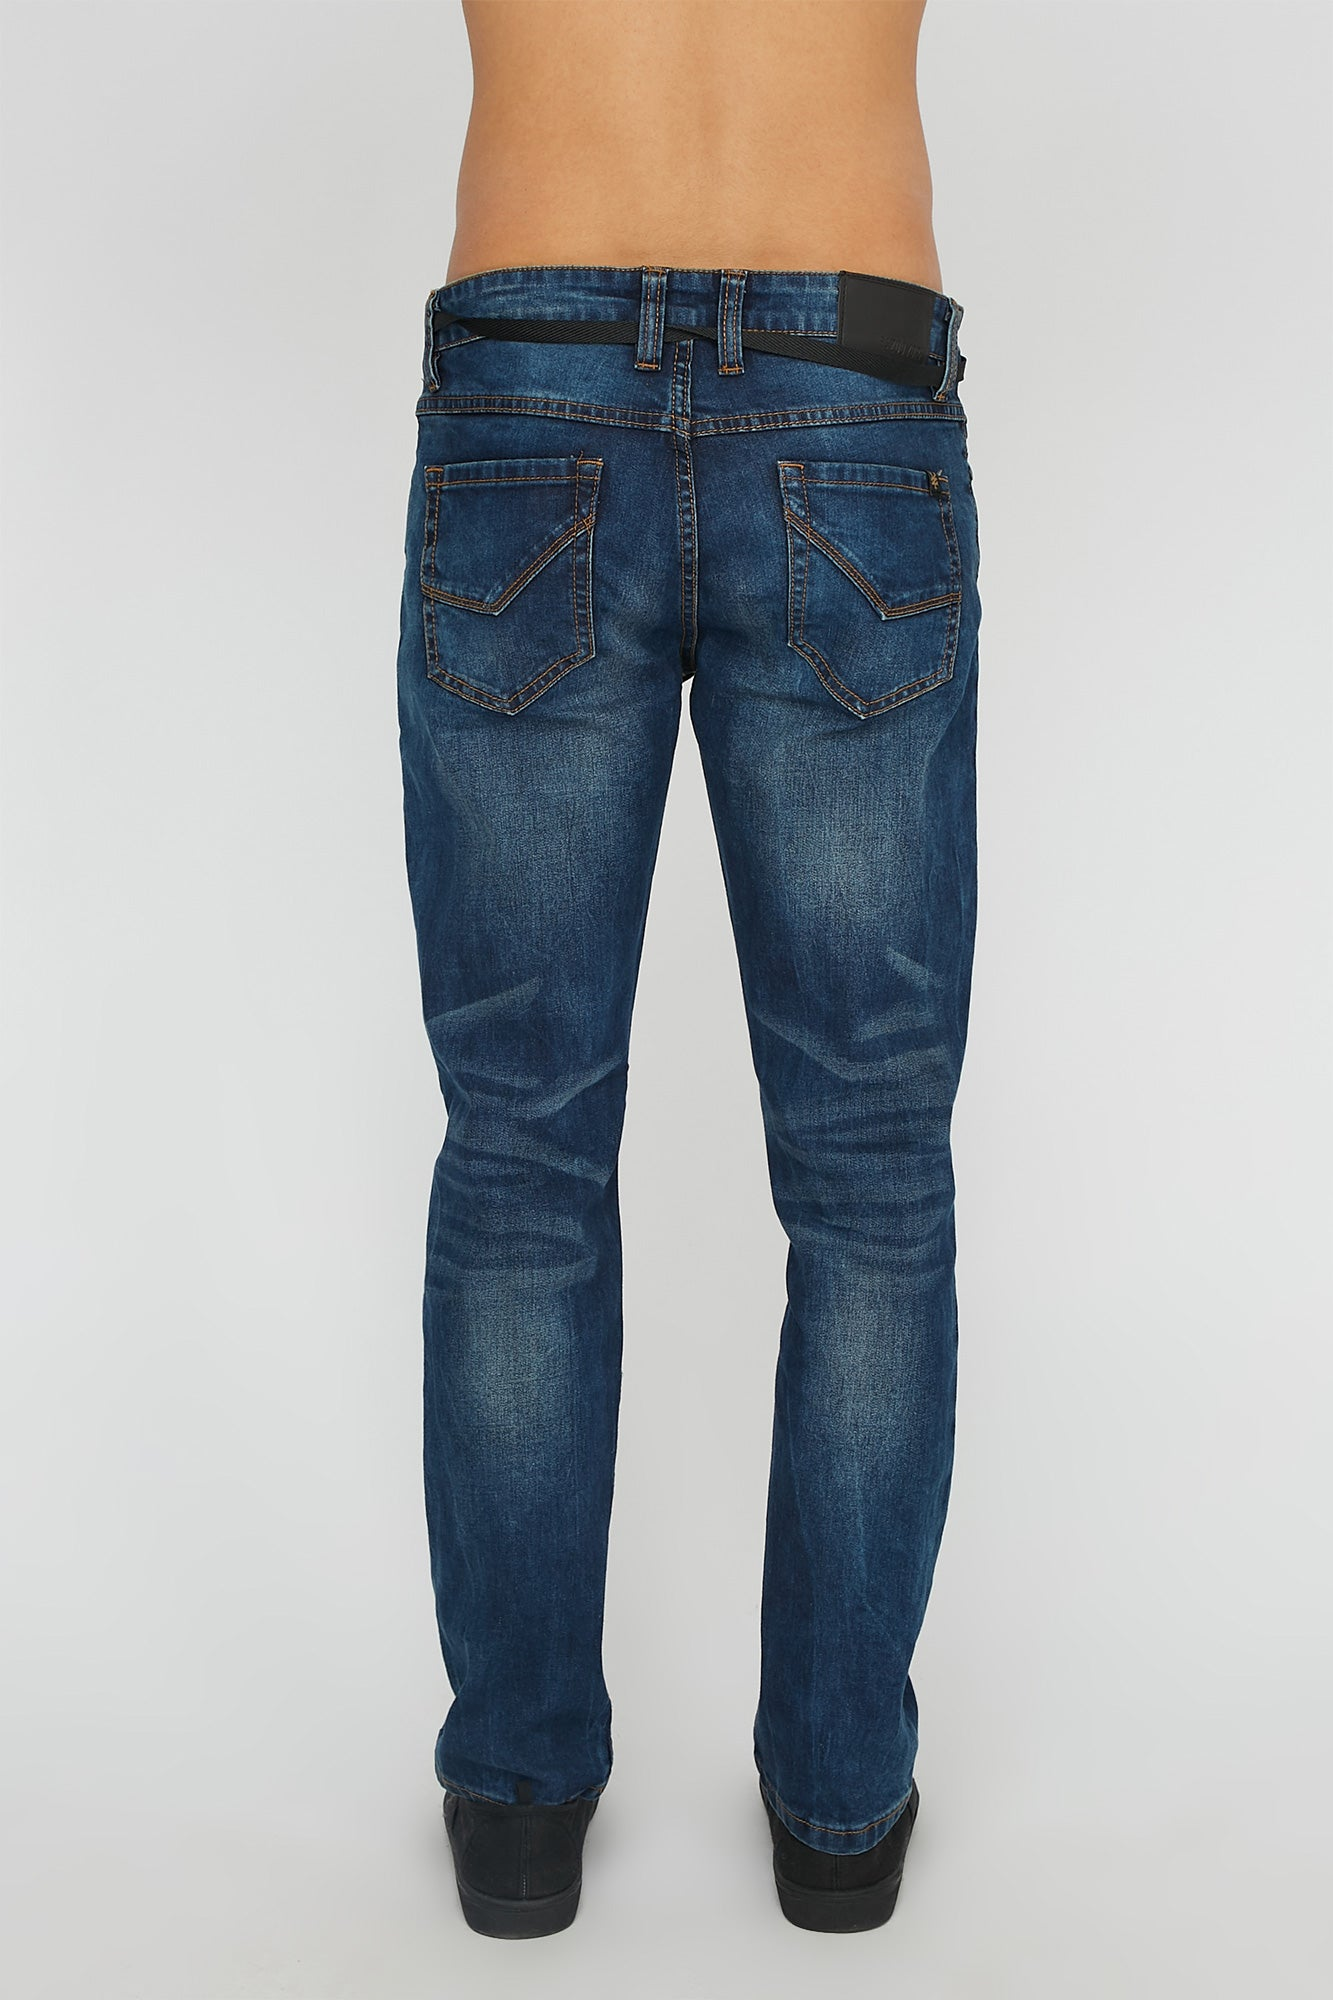 Zoo York Mens Dark Slim Jeans